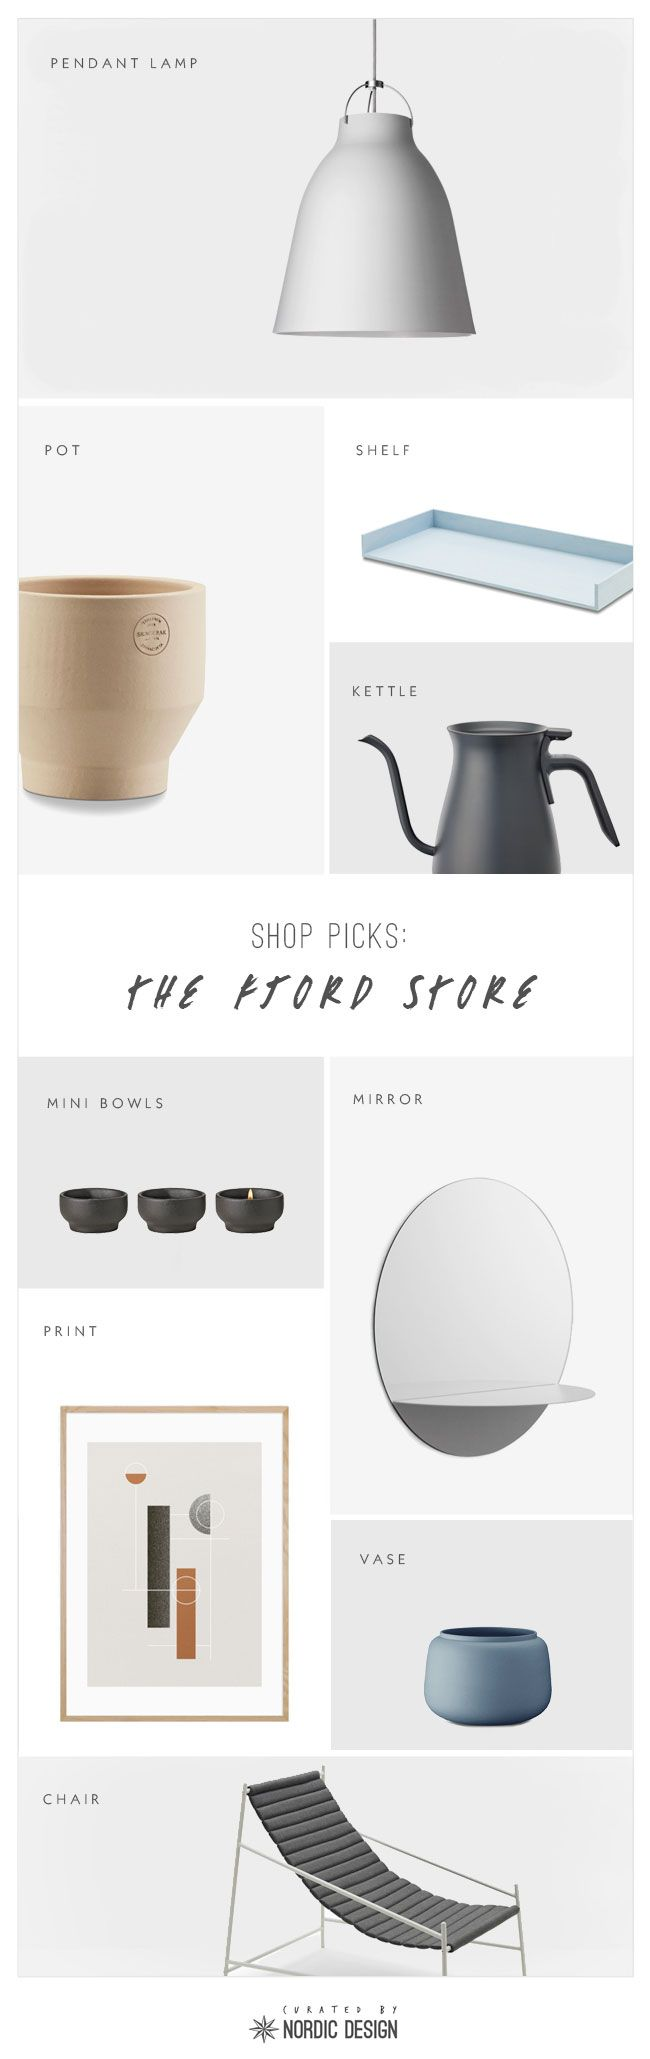 Shop Picks: The Fjord Store #skandinavischwohnen